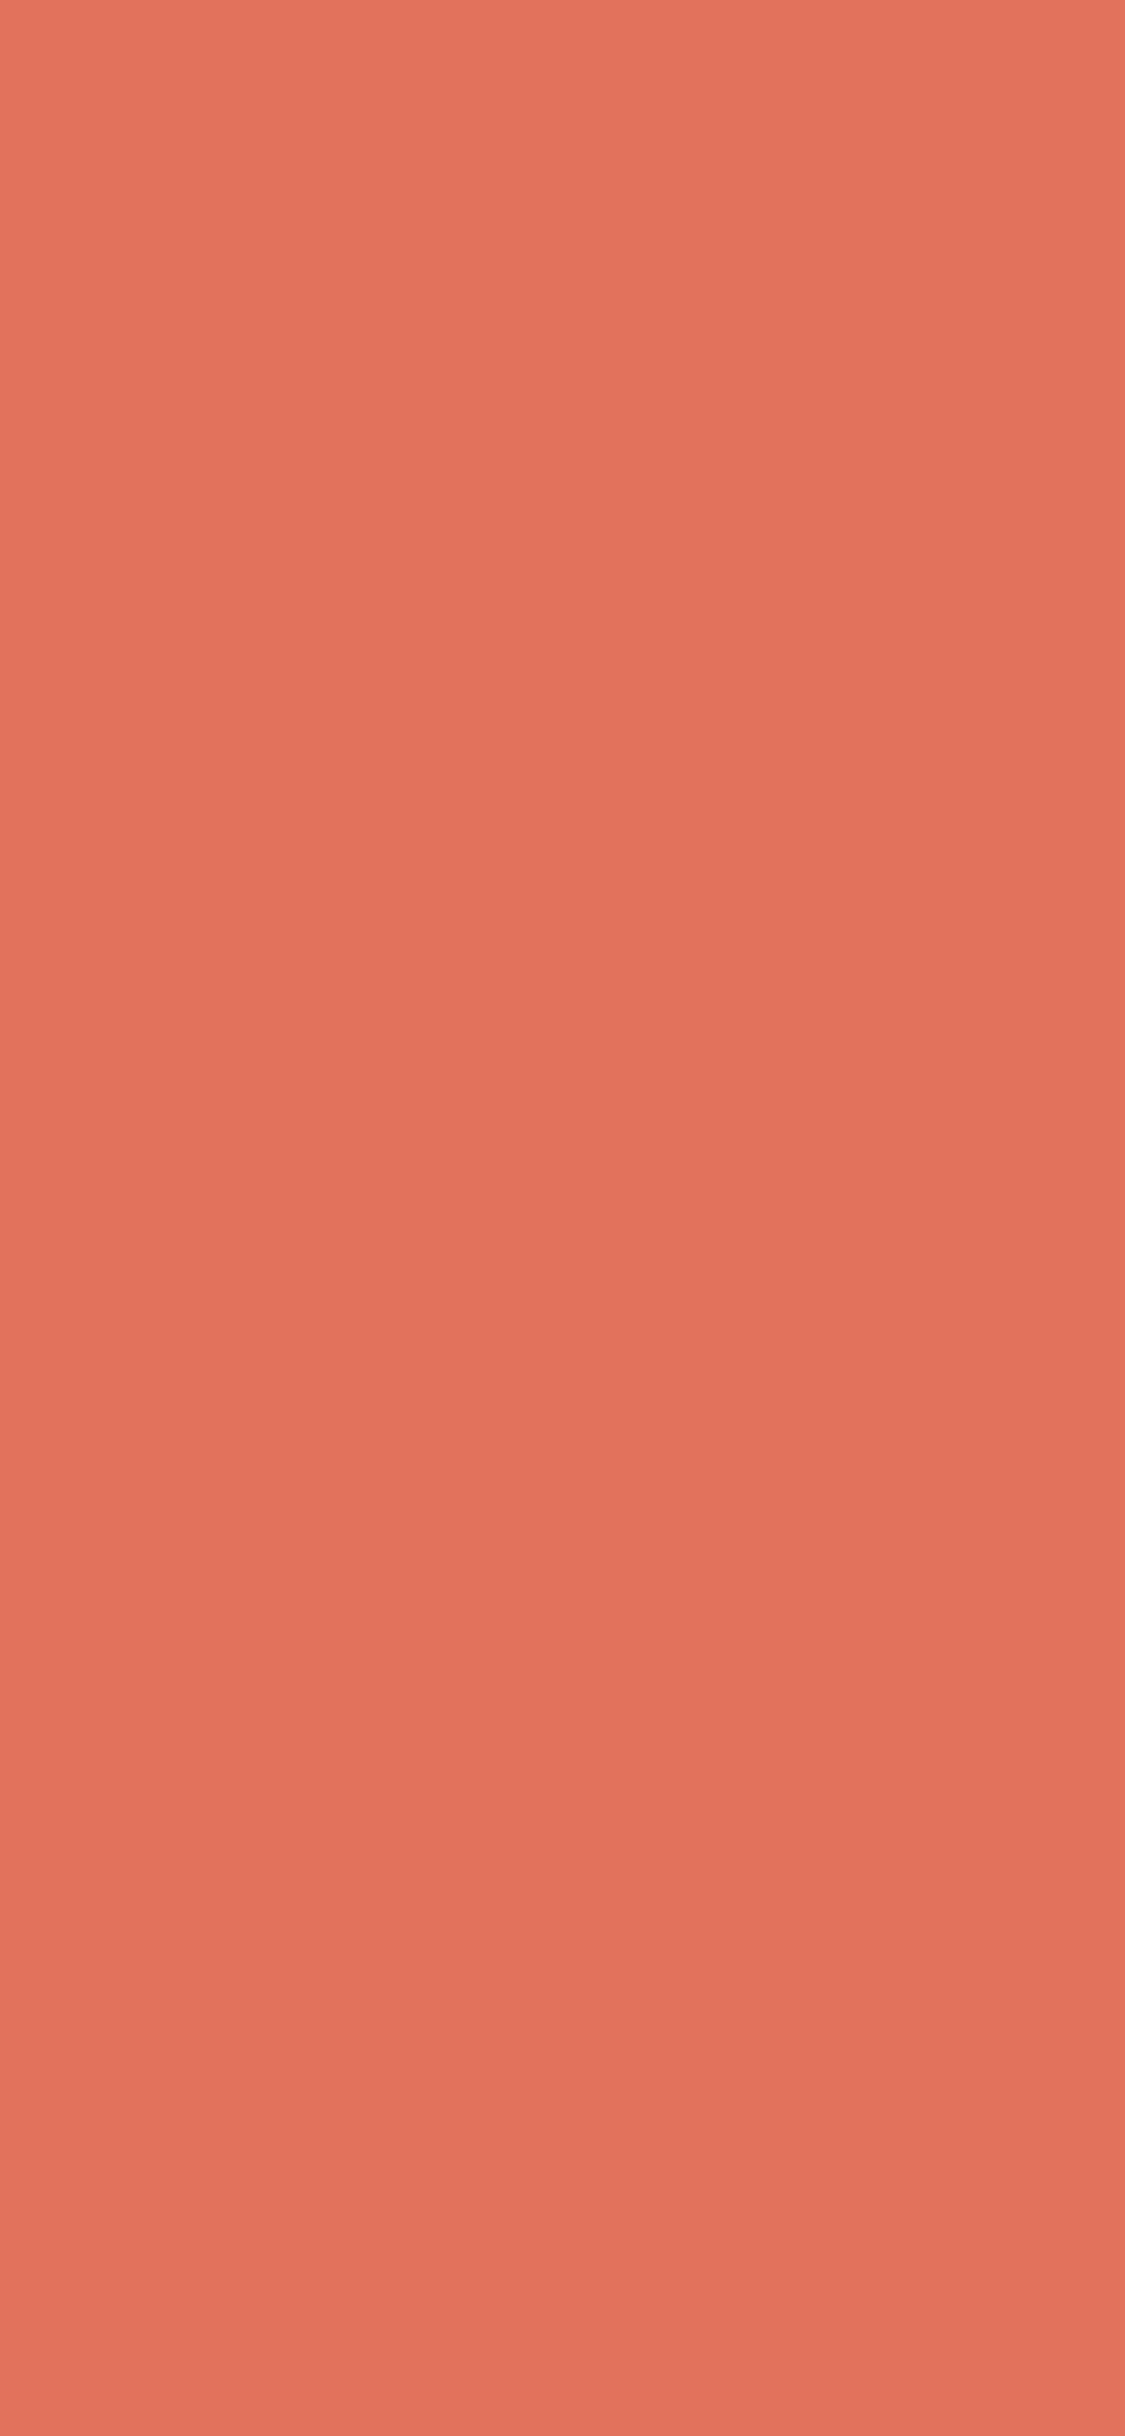 1125x2436 Terra Cotta Solid Color Background